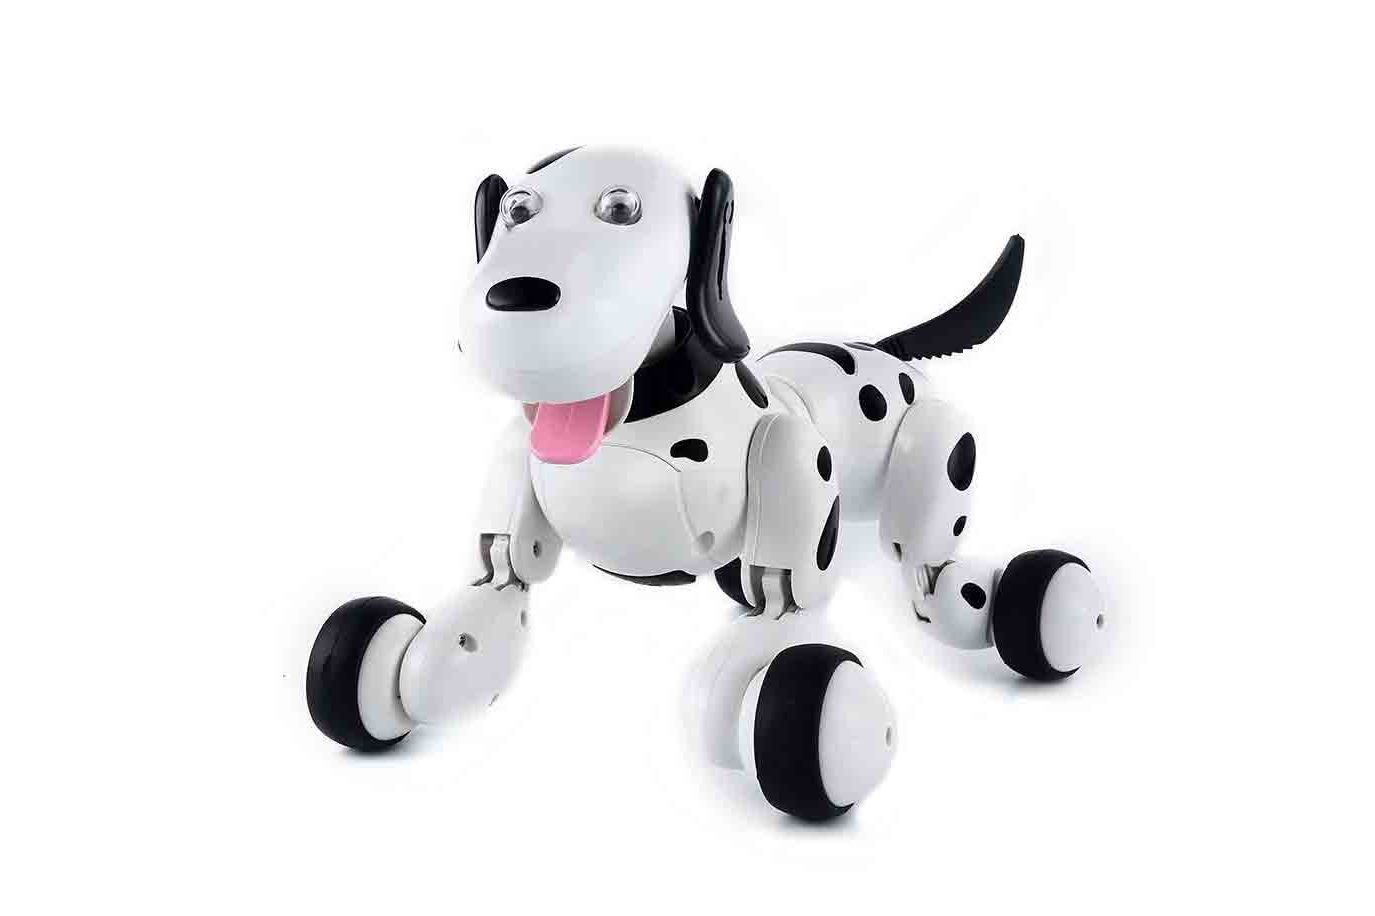 SainSmart Jr. Robot Dog Smart Dog